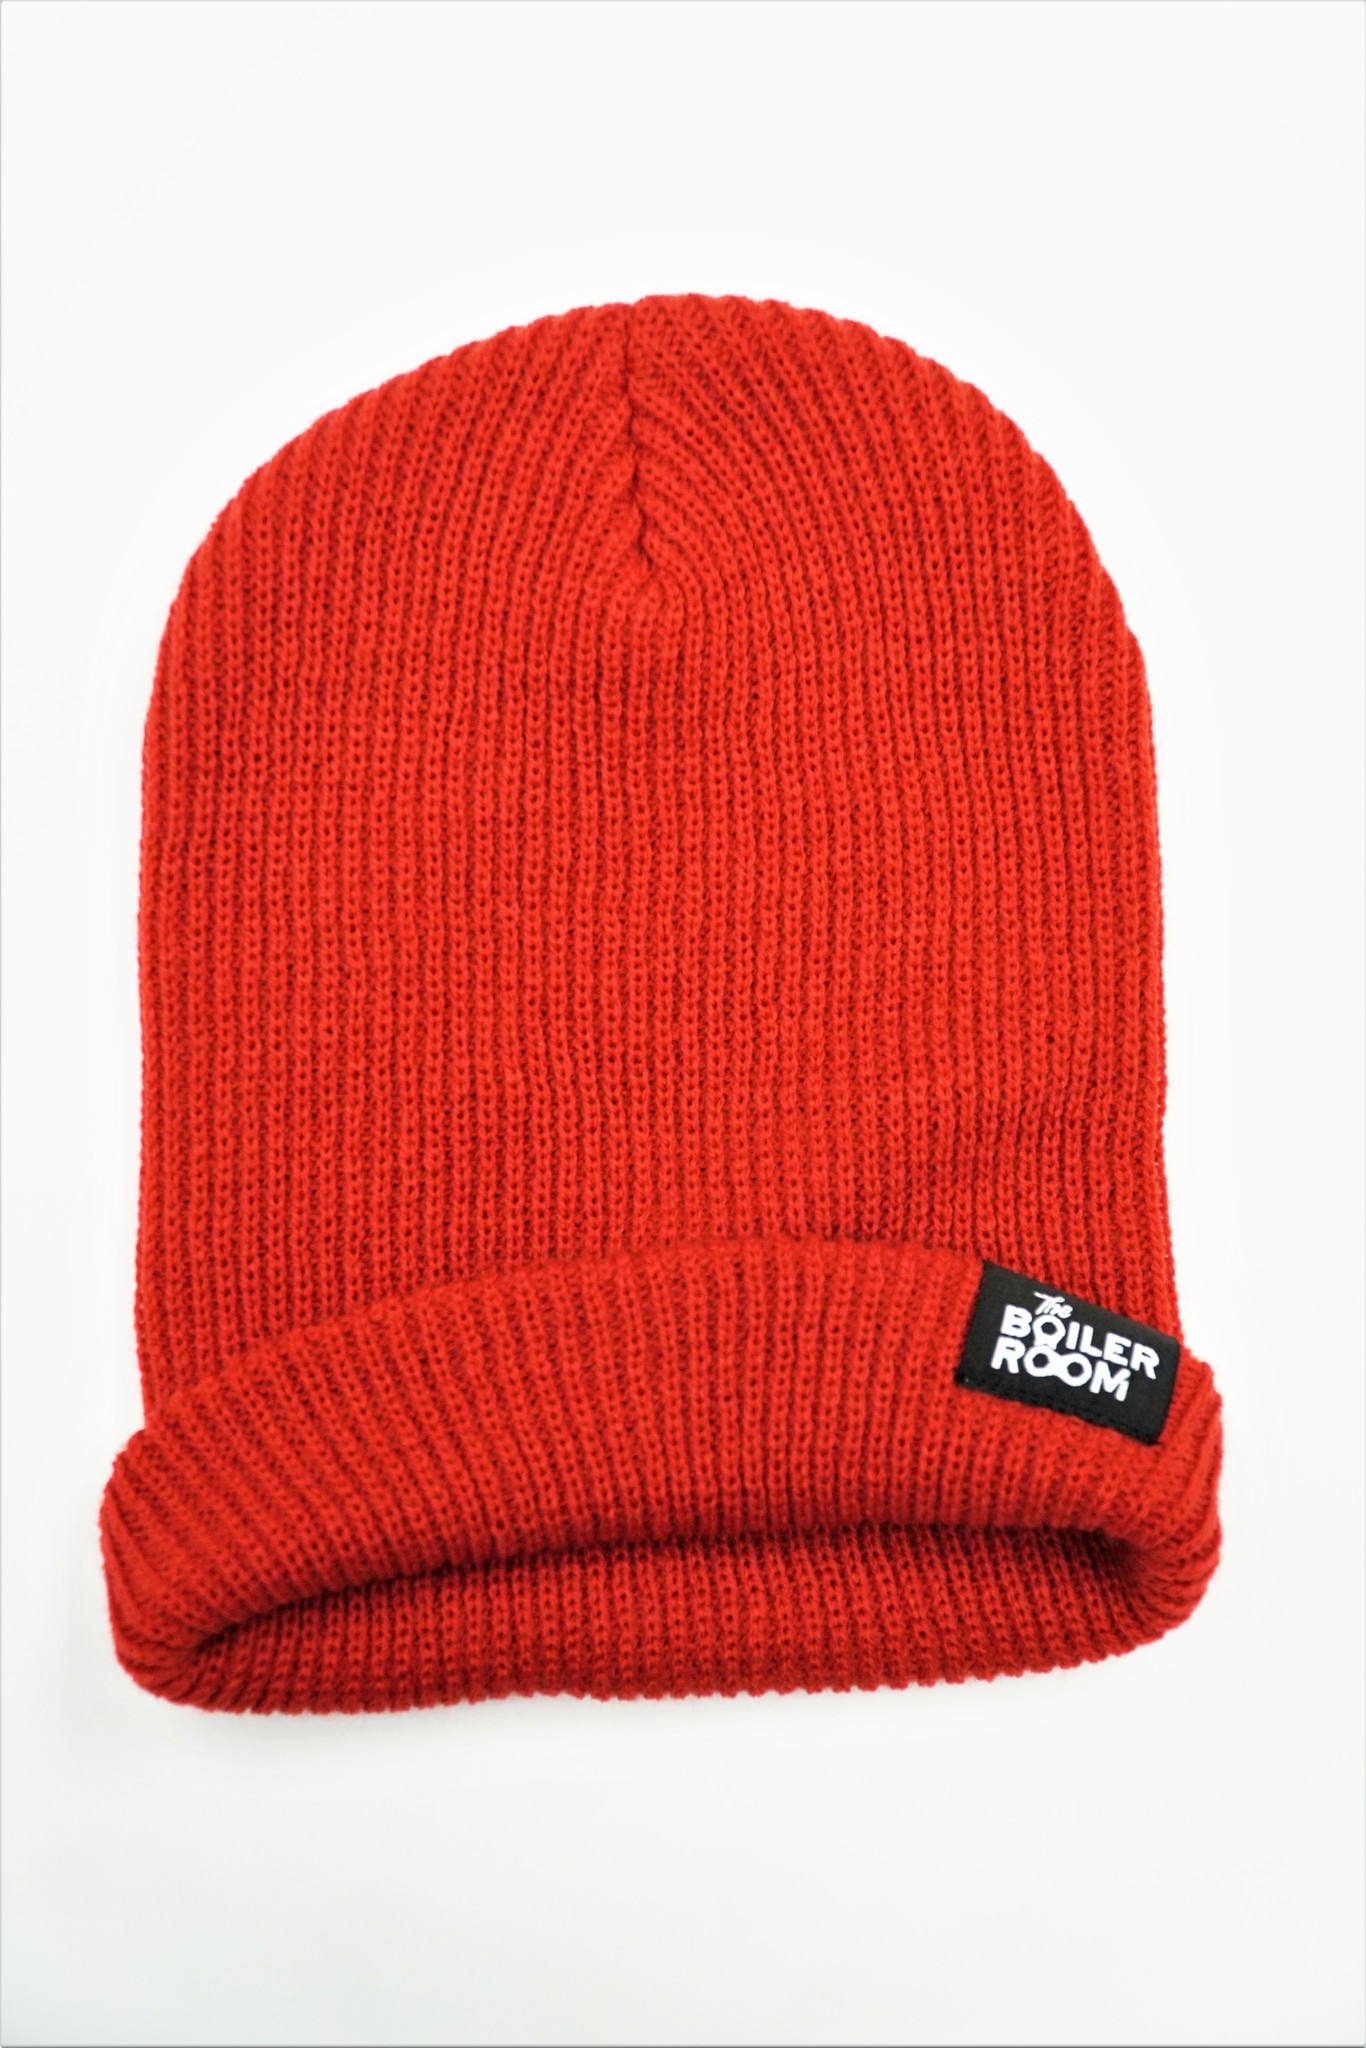 The Boiler Room Beanie